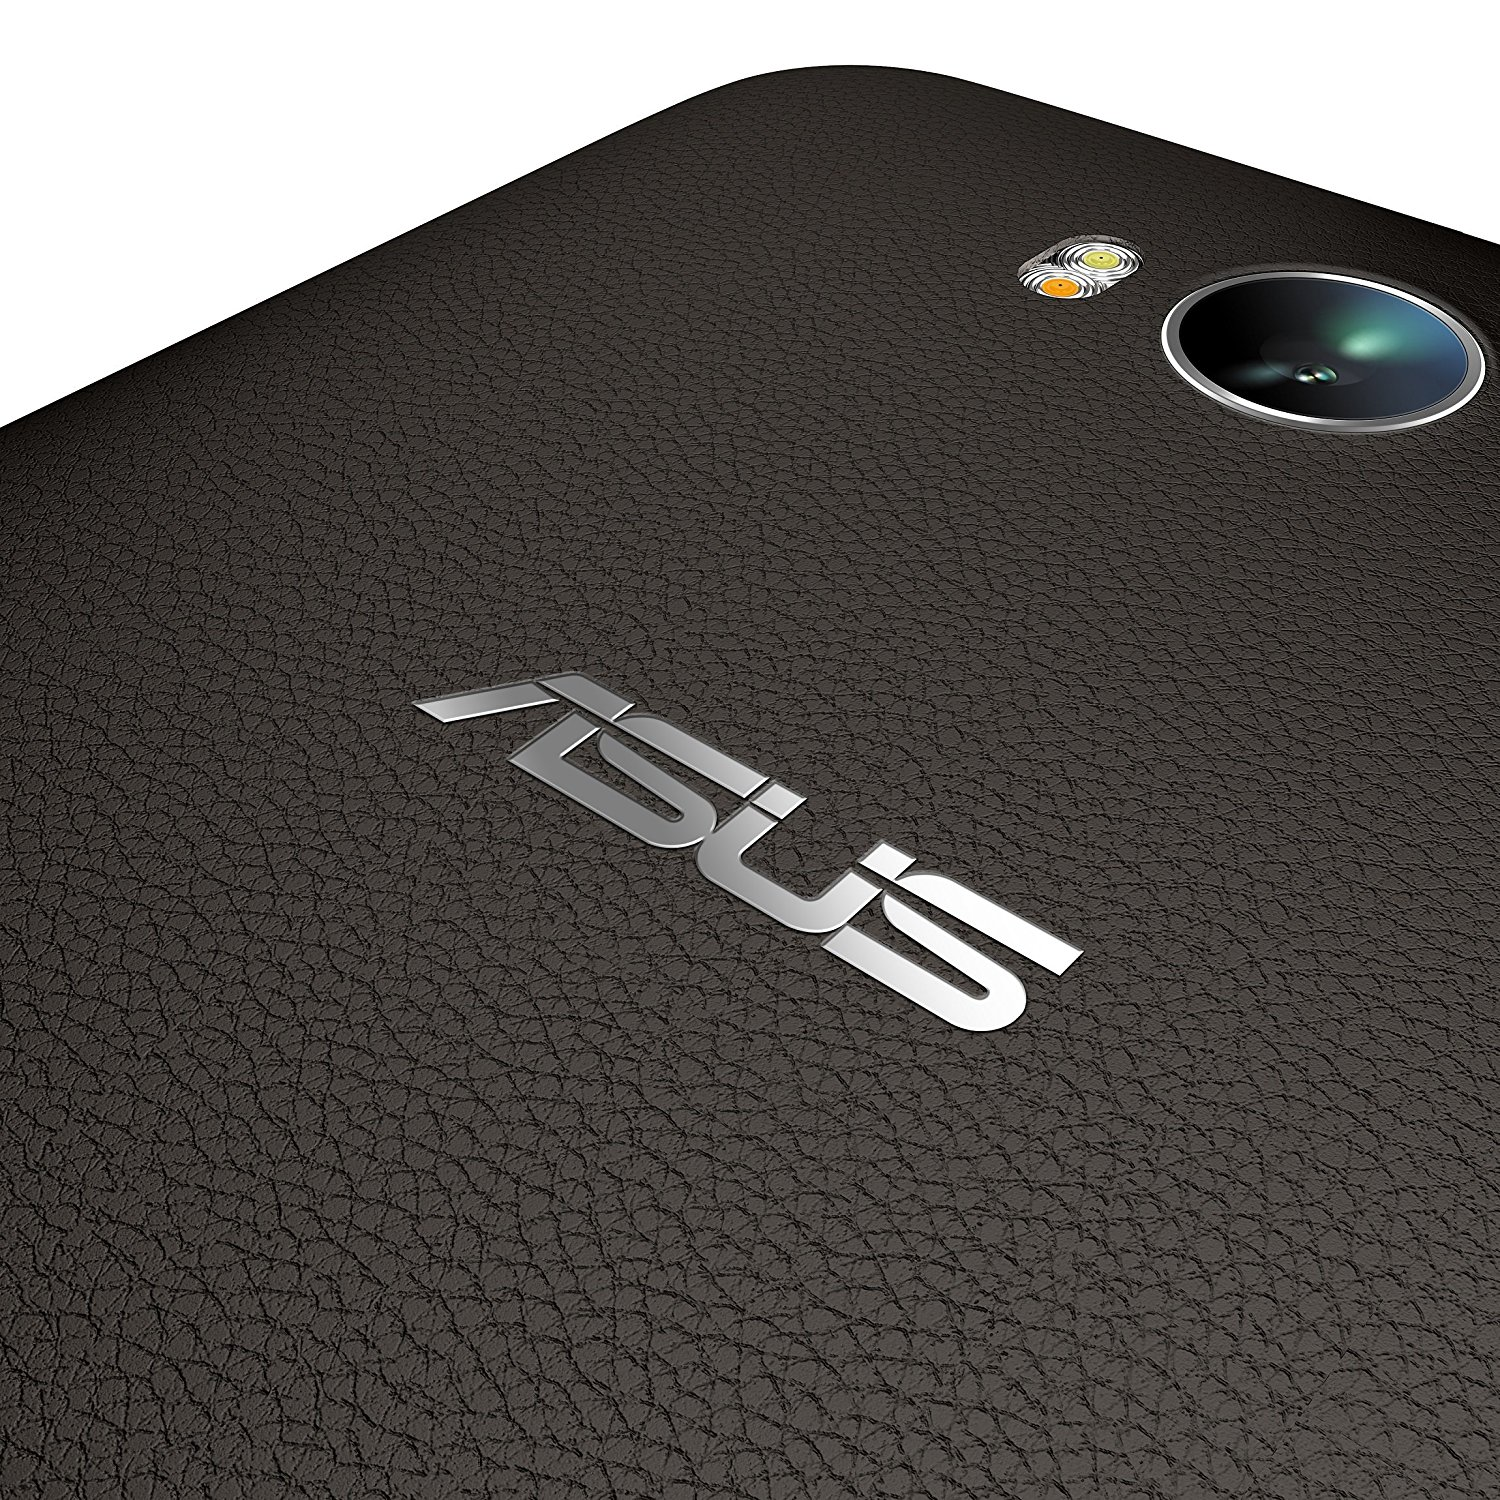 Asus Zenfone Max Zc550kl Photos Images And Wallpapers 2 32gb Black Image 5